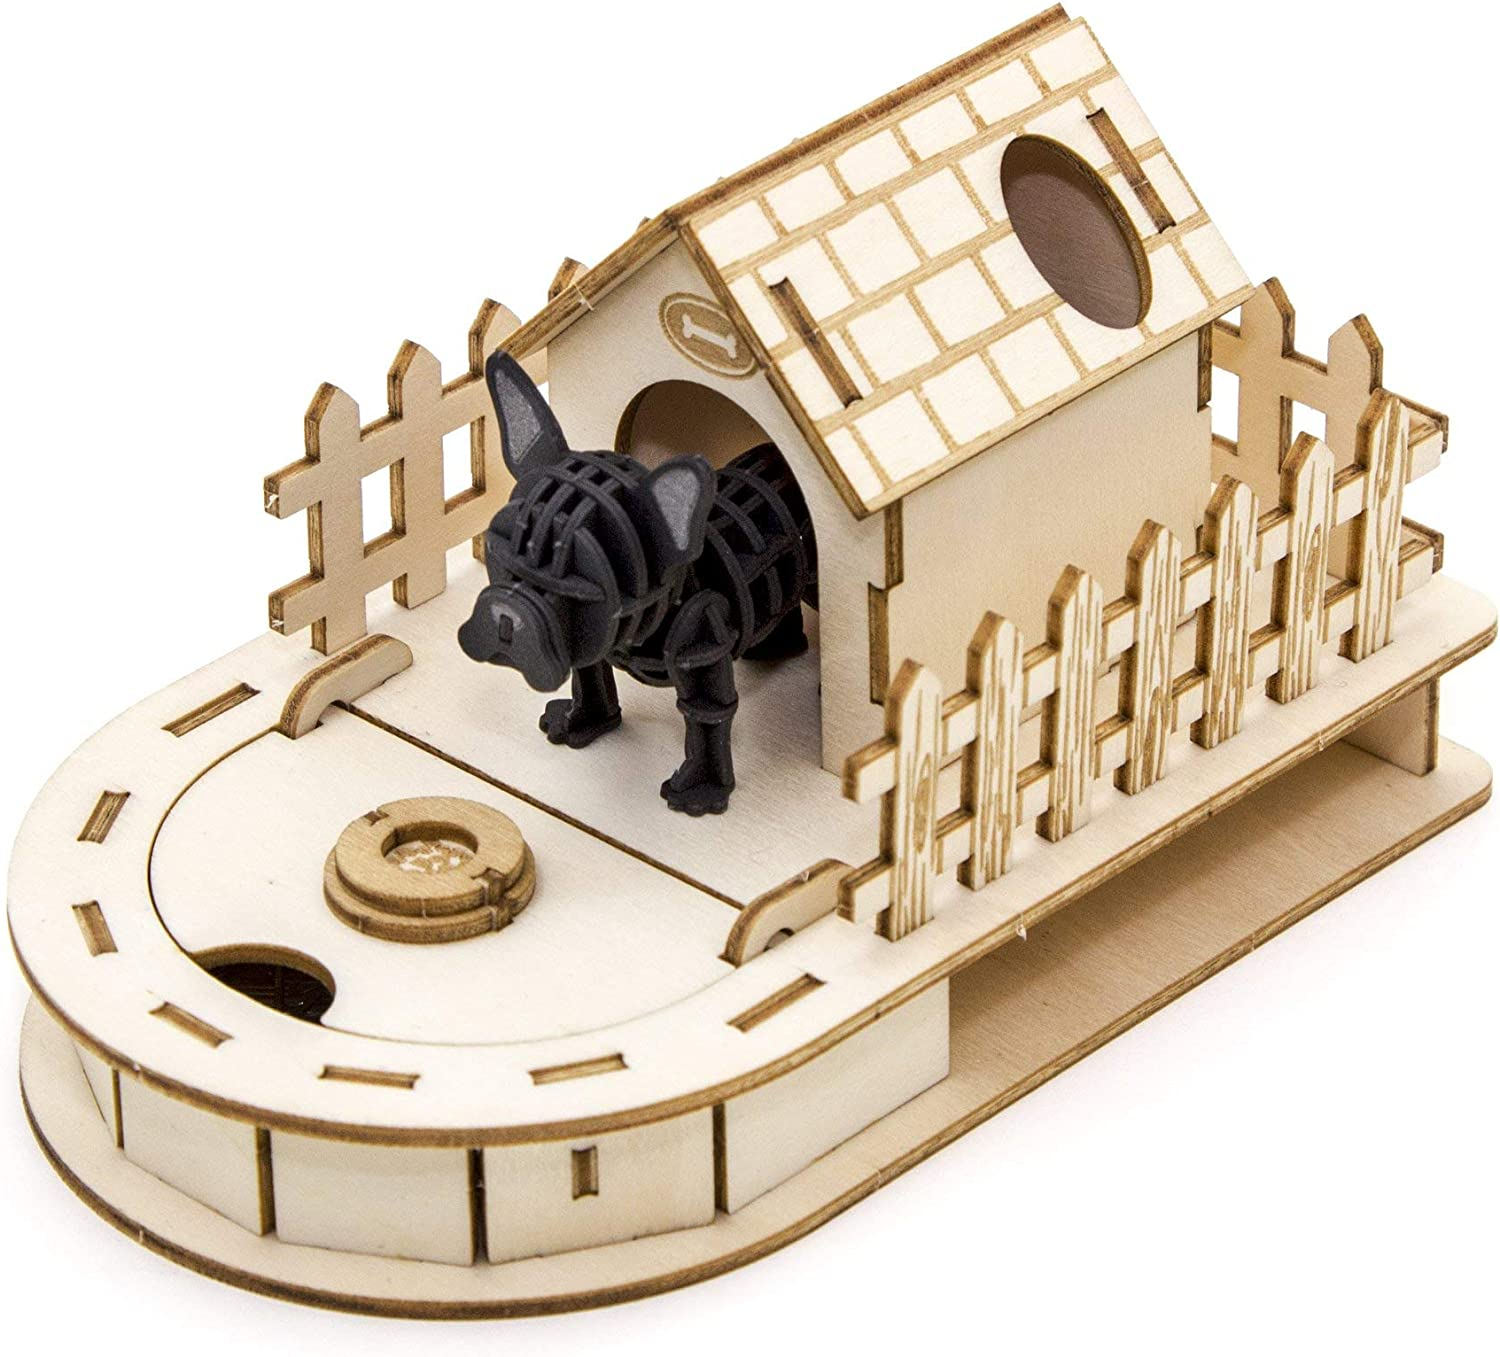 2mm Plywood Wooden 3D Puzzle for Teens and Adults Mechanical Models Kits Dog House Mini Desktop Organizer with Paper Schnauzer Team Green JIGZLE Paper